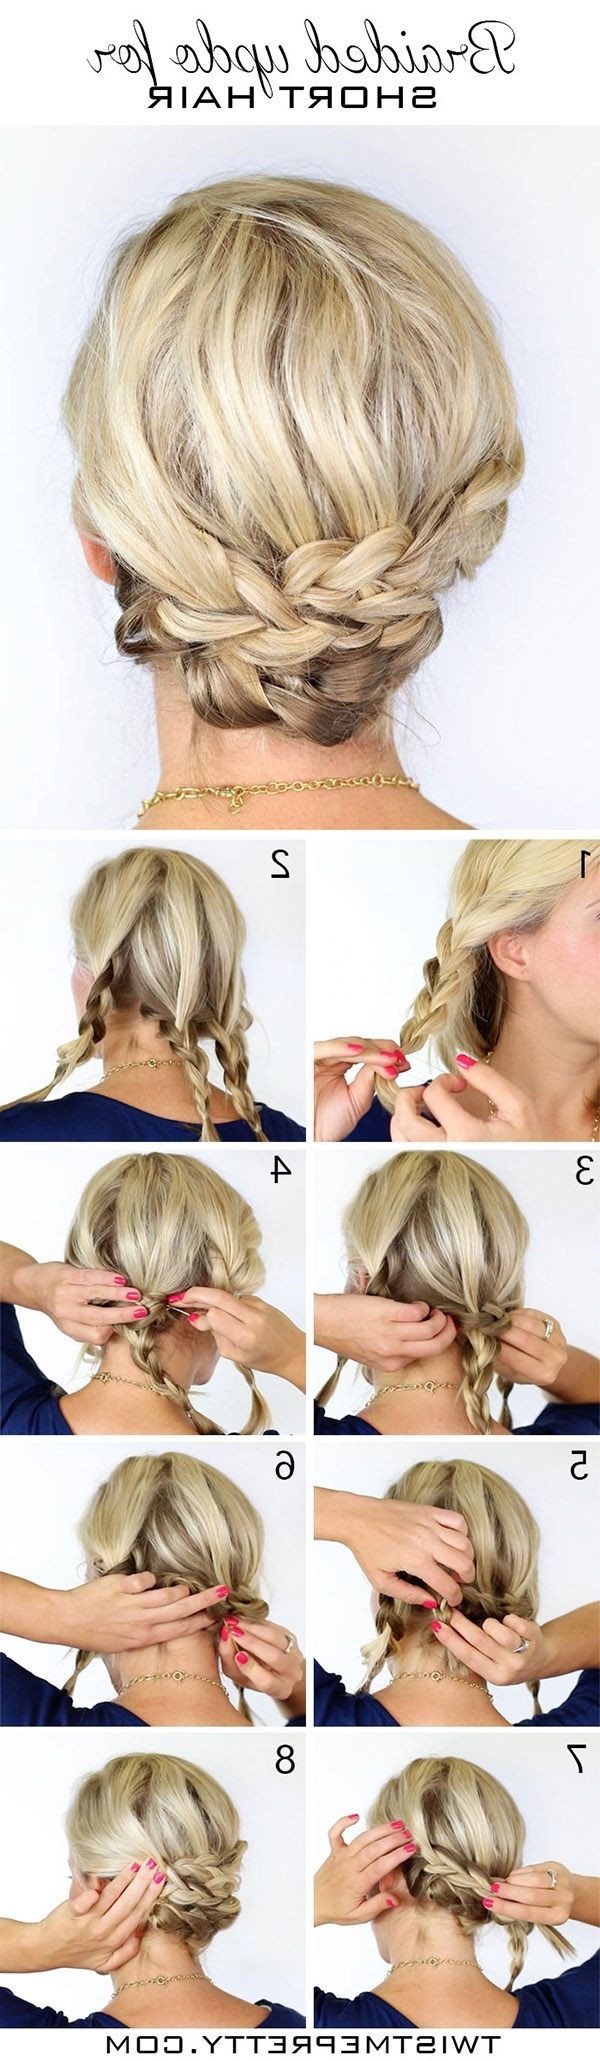 20 Diy Wedding Hairstyles With Tutorials To Try On Your Own For Trendy Elegant Wedding Hairstyles For Short Hair (View 2 of 15)